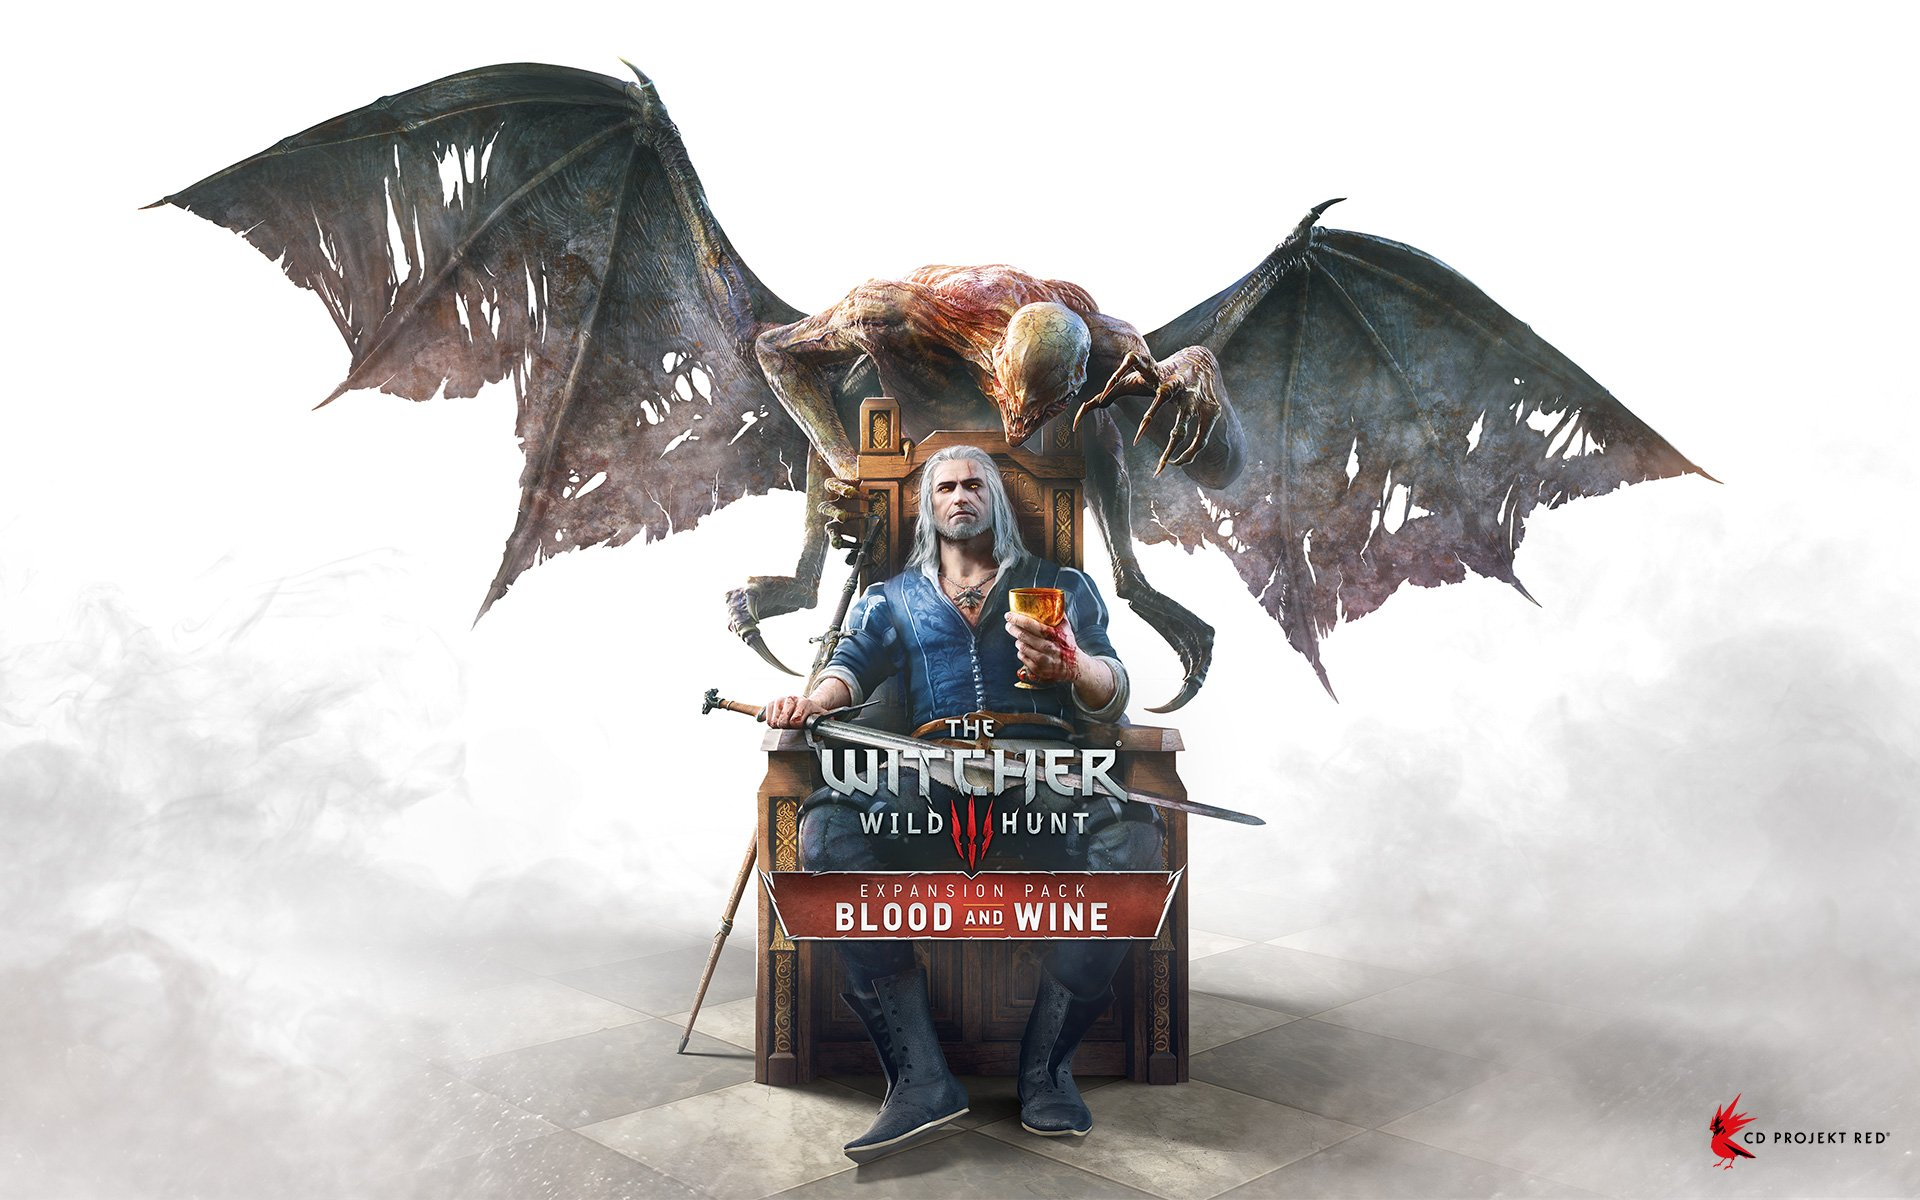 The-Witcher-3-Blood-and-Wine-random-pn